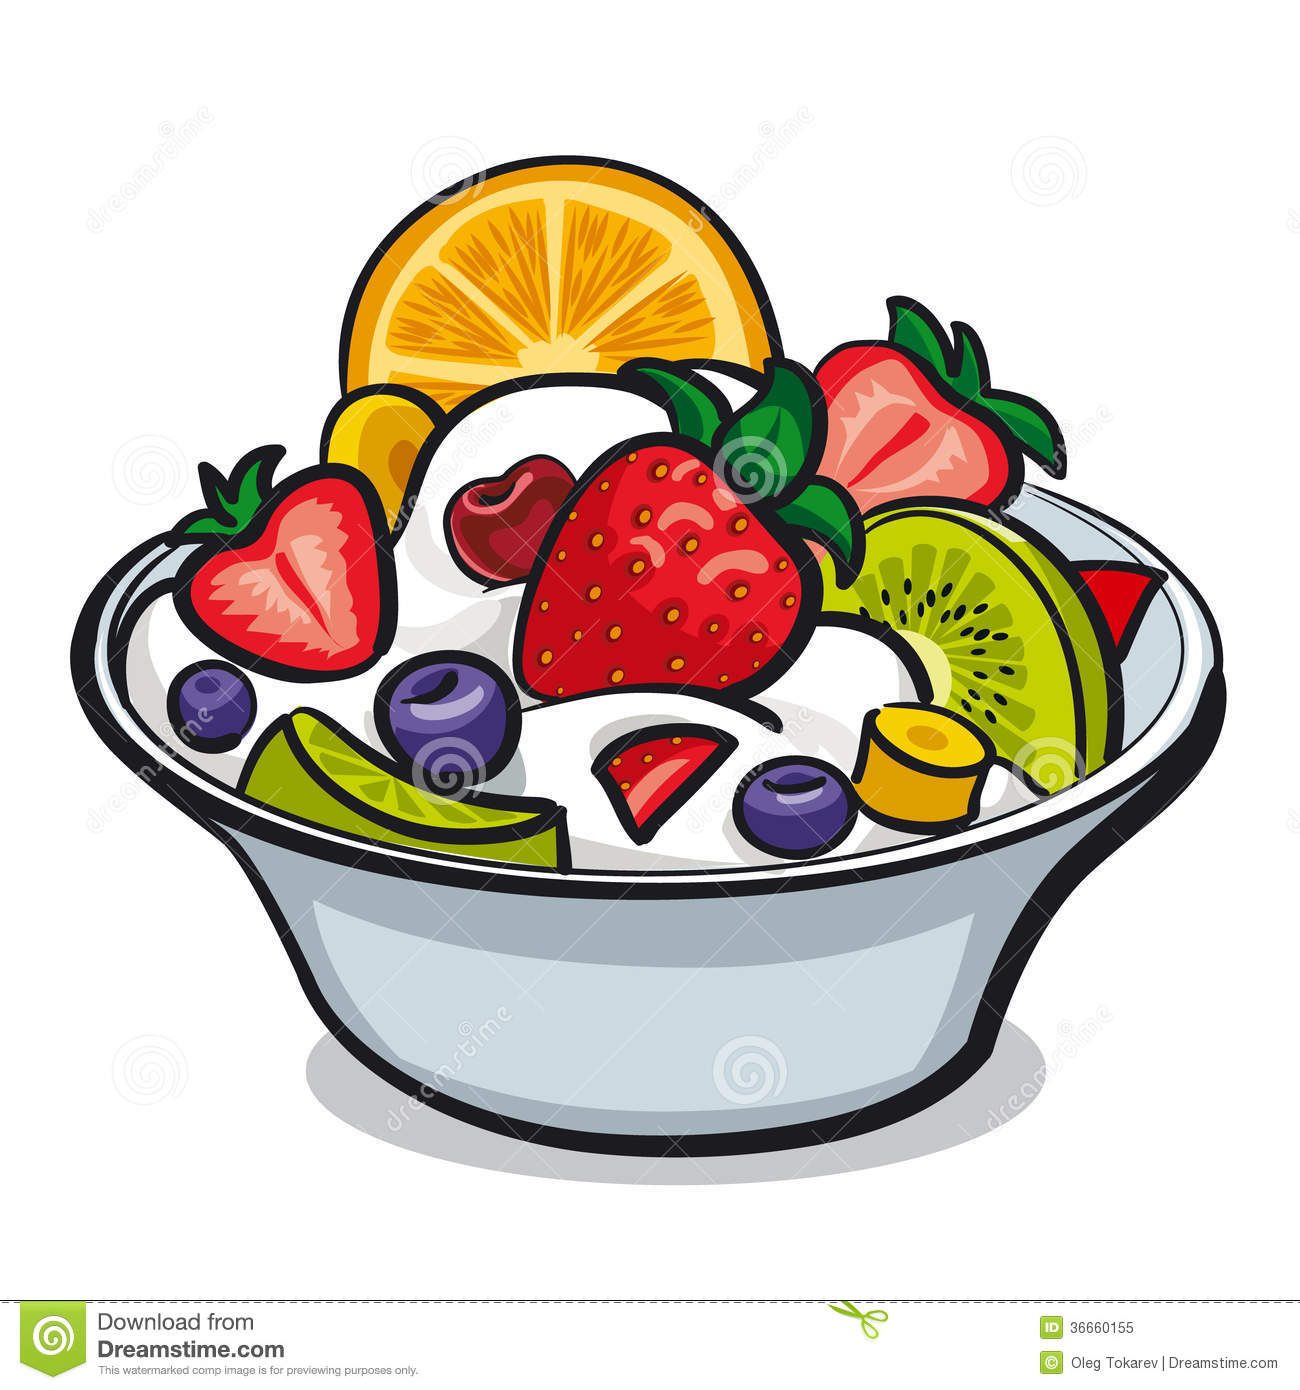 Fresh Fruit Salad Royalty Free Stock Photo - Image: 36660155